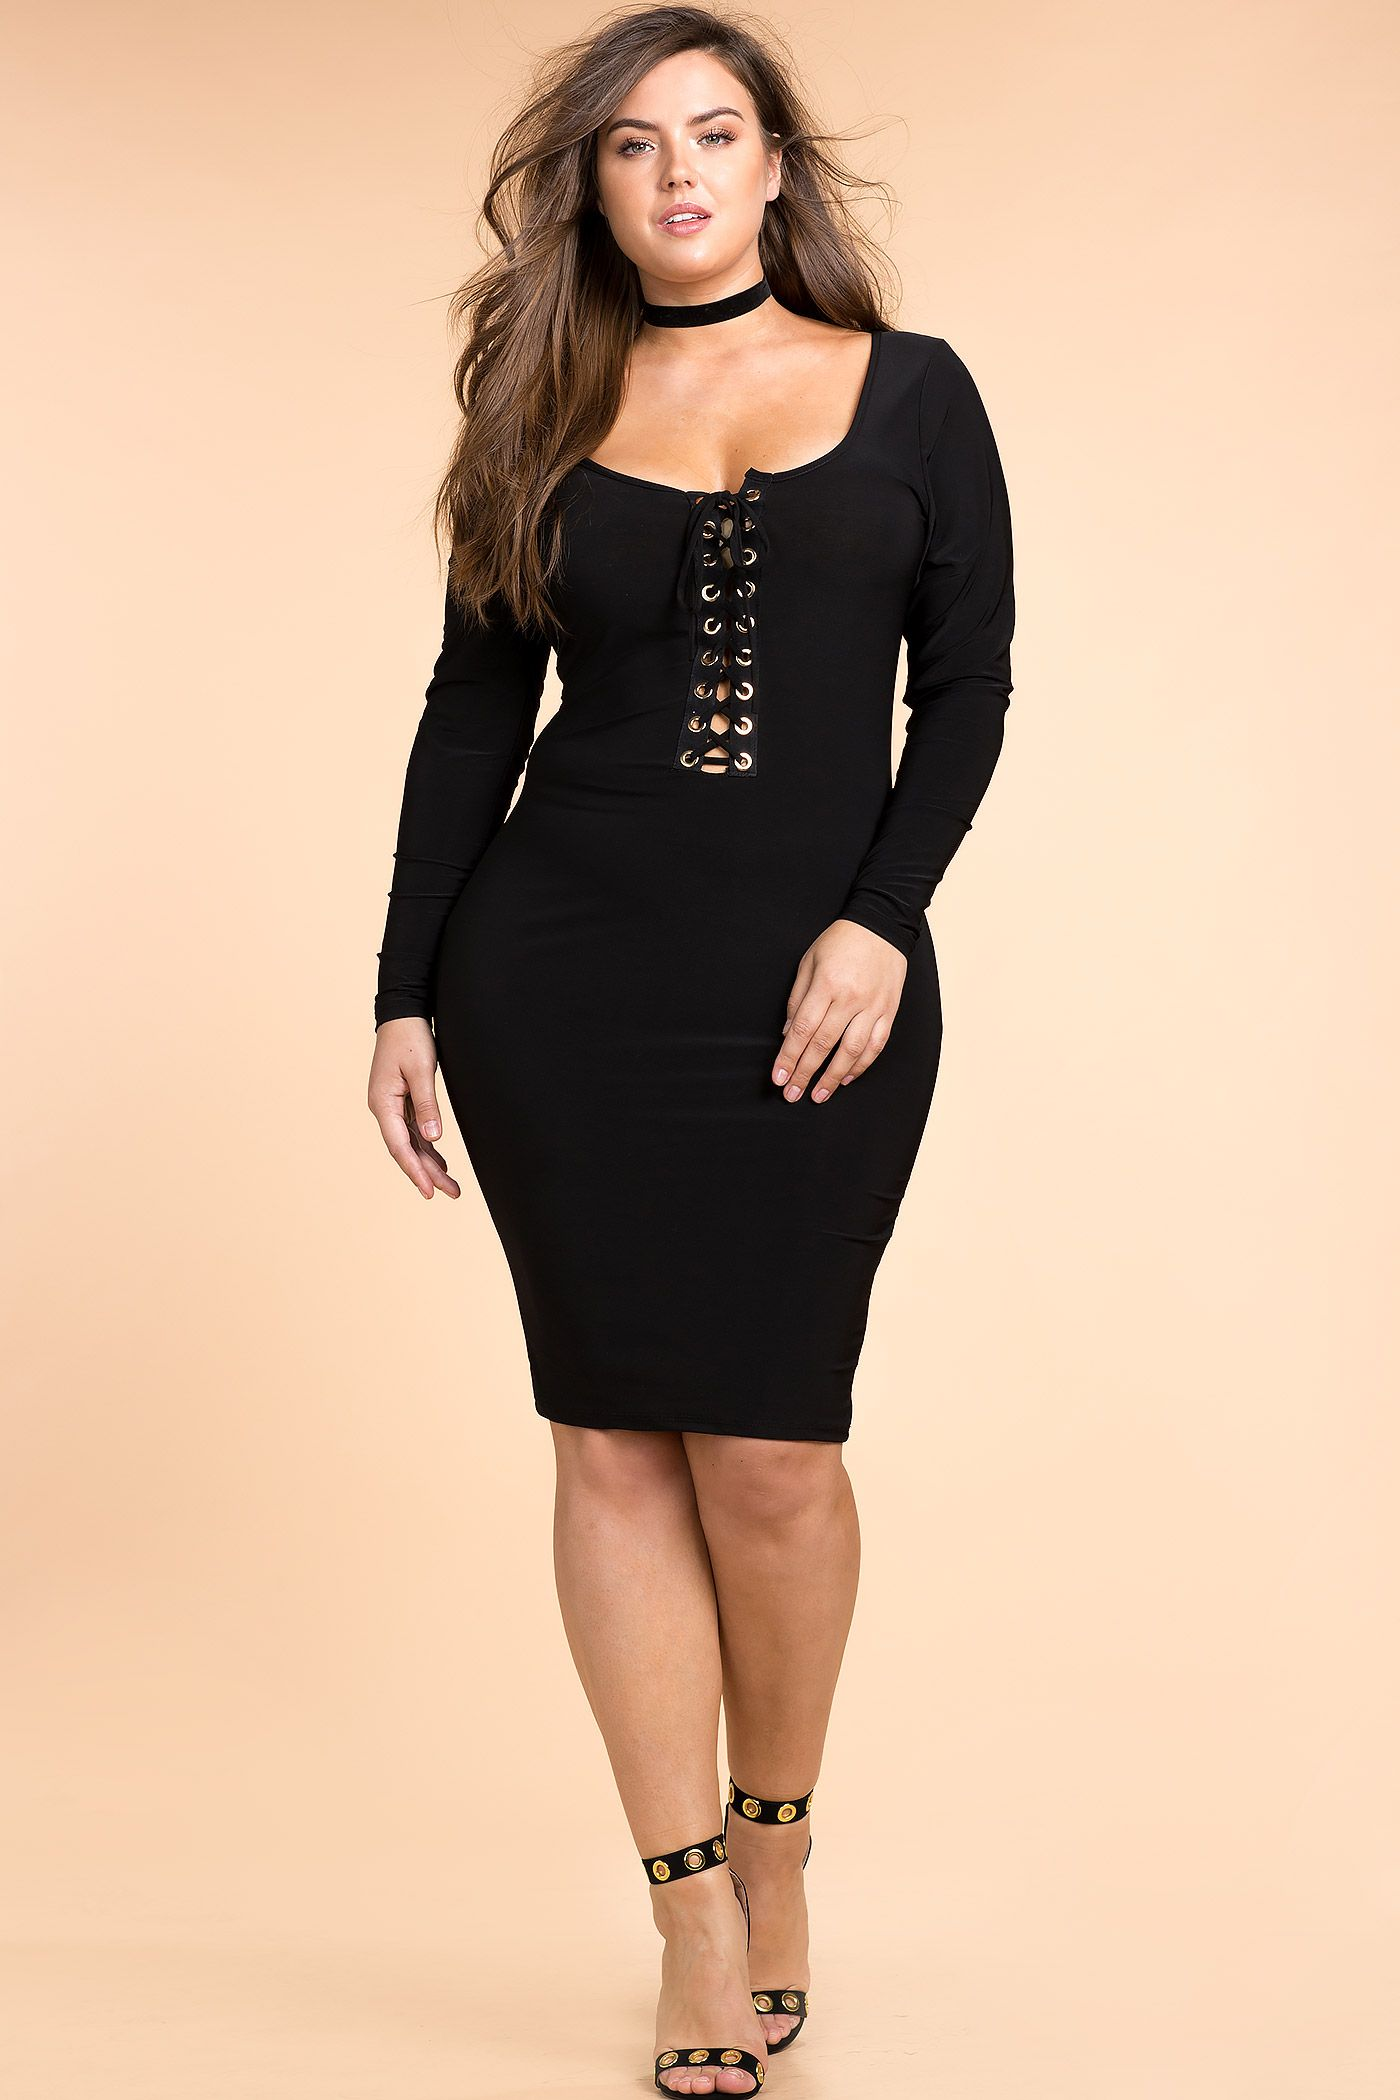 Women\'s Plus Size Bodycon Dresses | Plunge Lace Up Bodycon ...